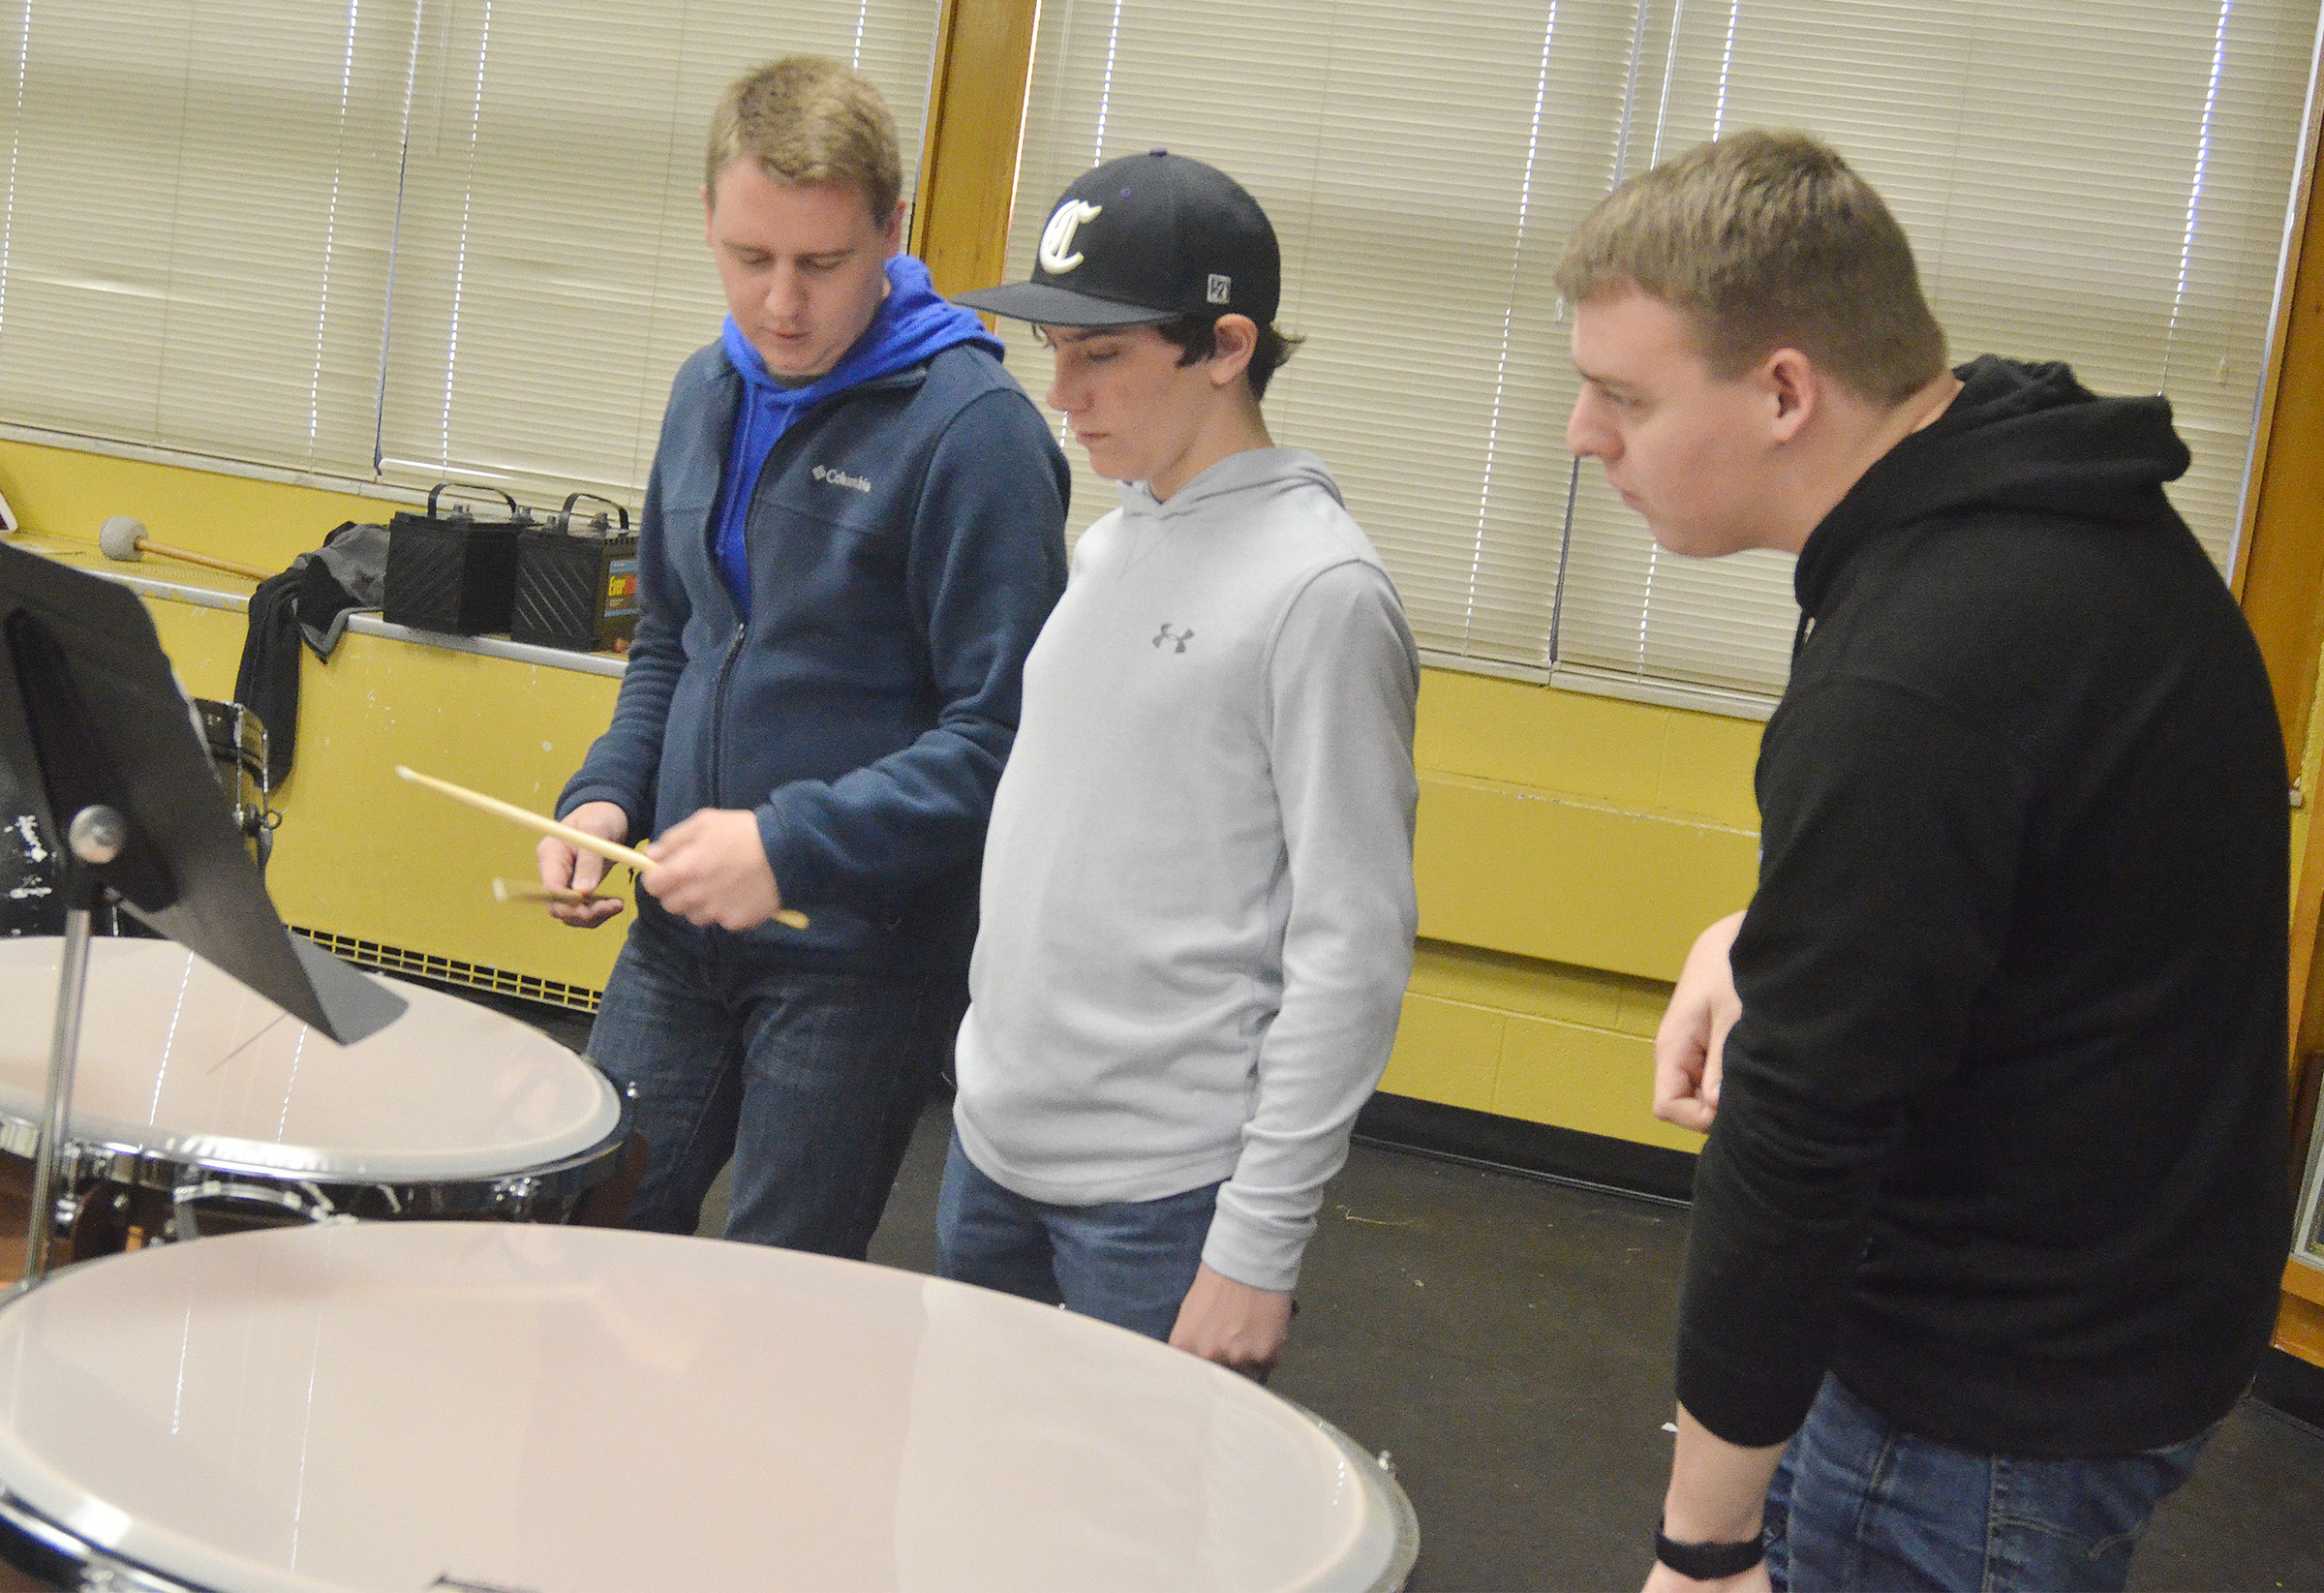 Lindsey Wilson College music students Taylor Cook, at left, and Tyler Cook, at right, help Campbellsville Middle School seventh-grader Peyton Dabney as he plays timpani.